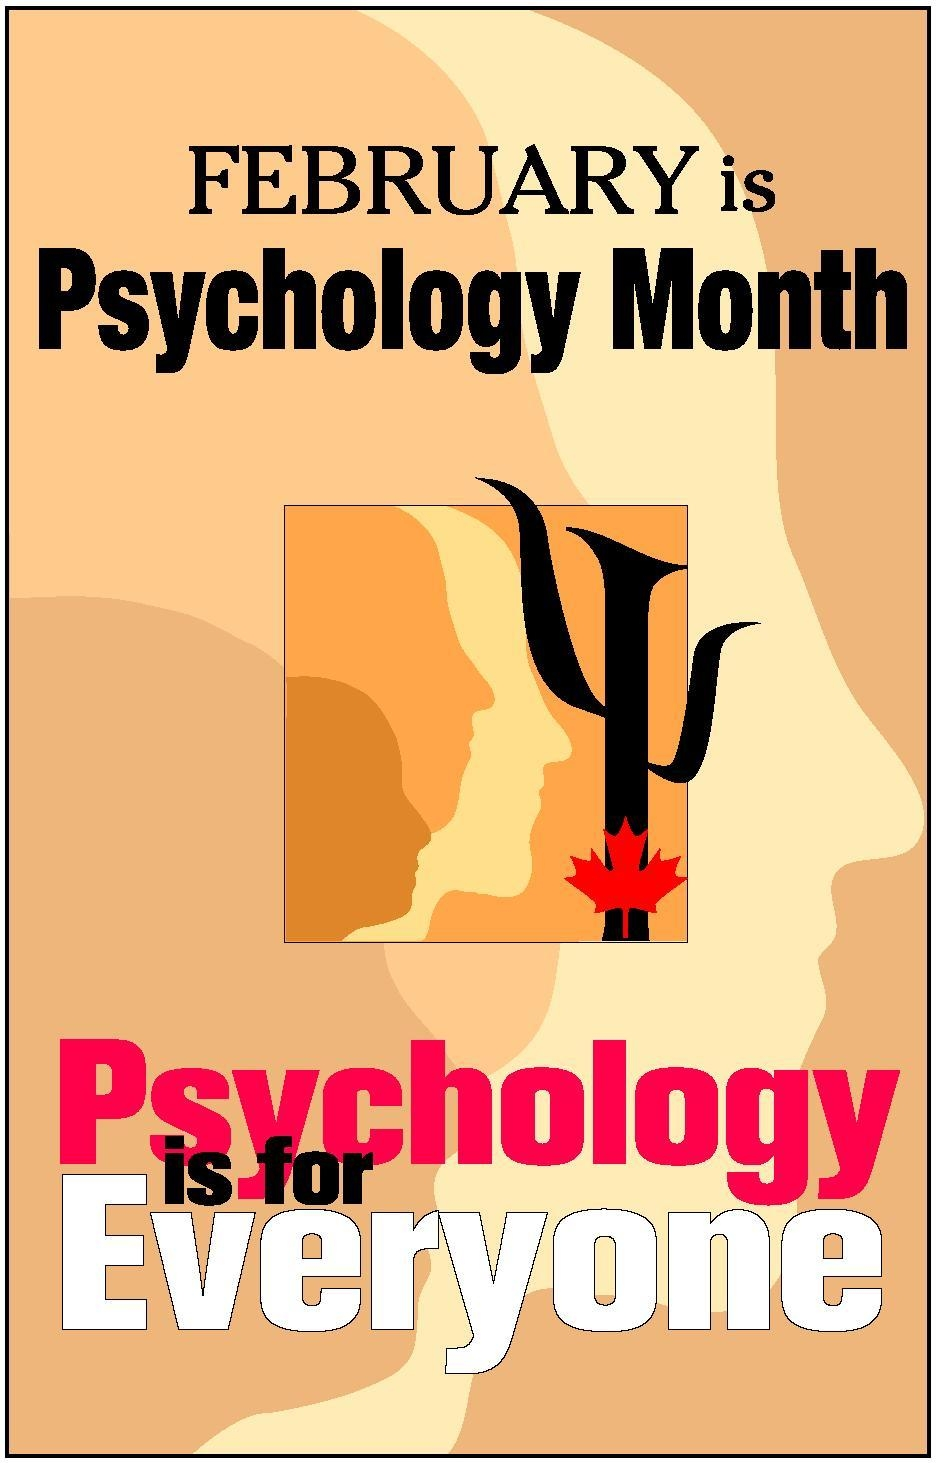 Accessed from:  http://www.cpa.ca/psychologymonth/